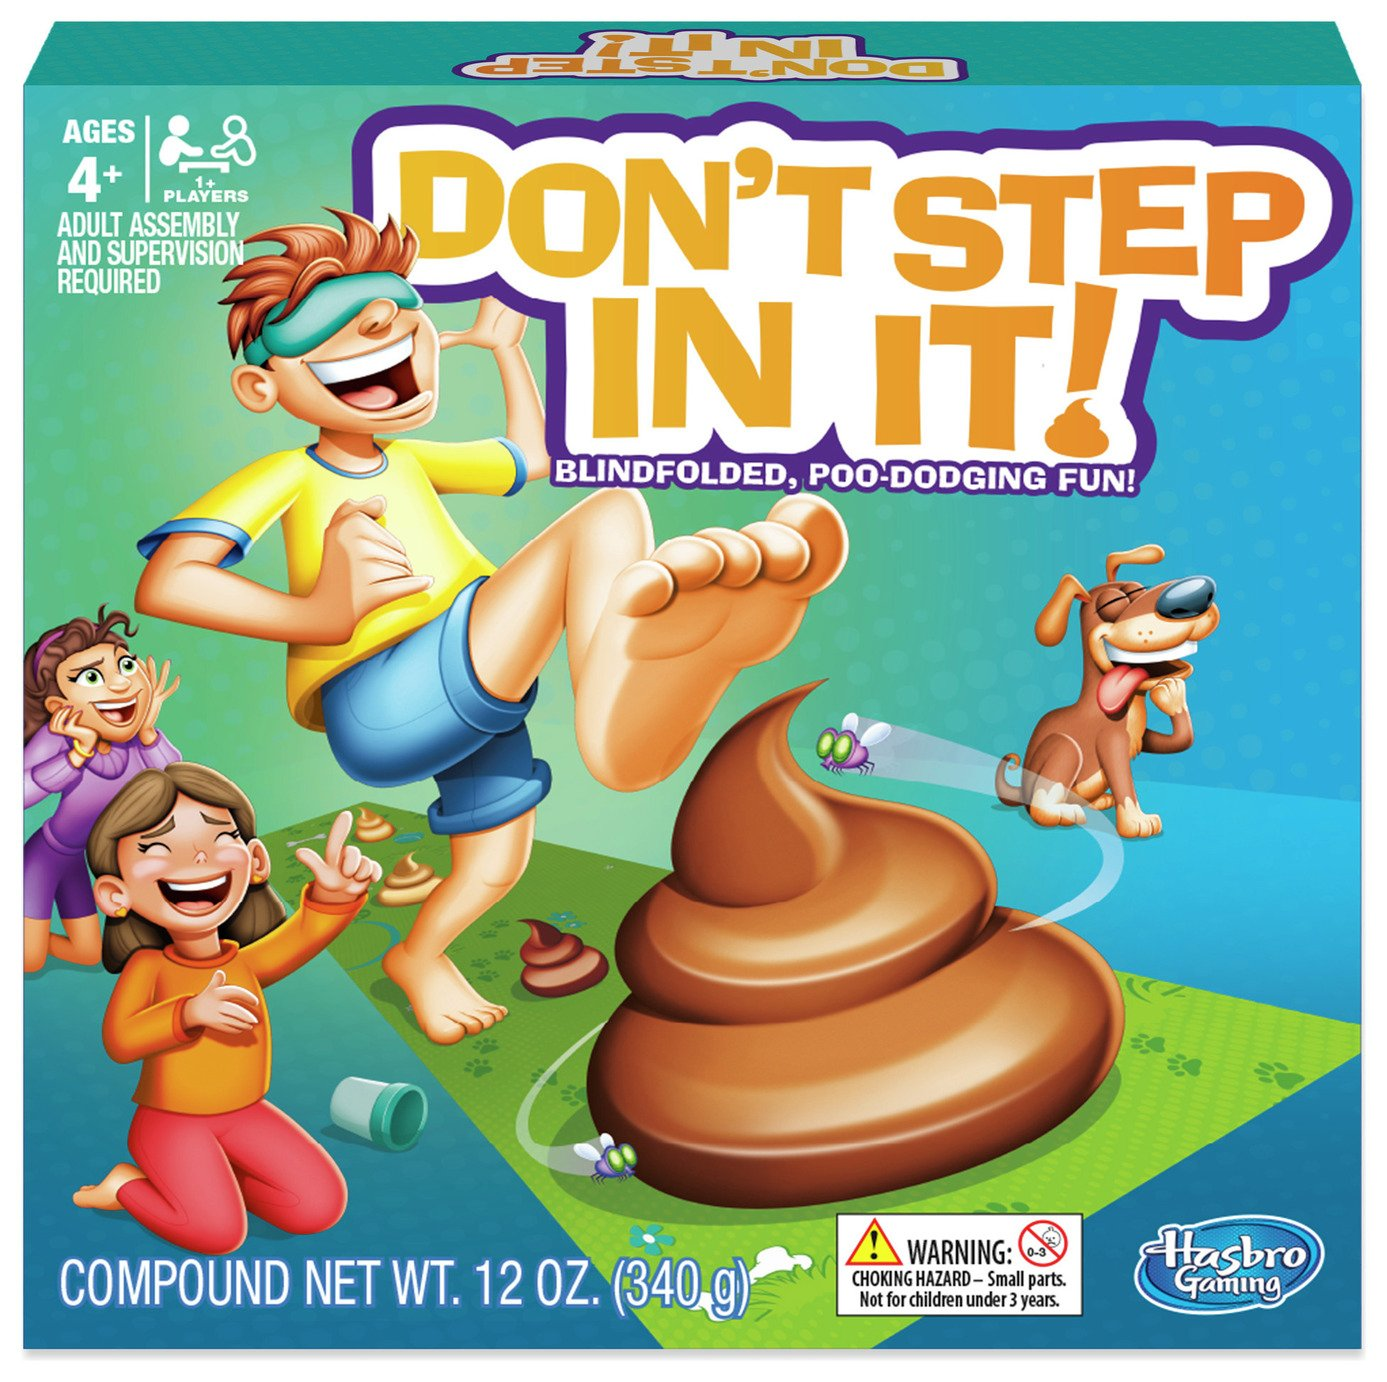 Don't Step In It from Hasbro Gaming